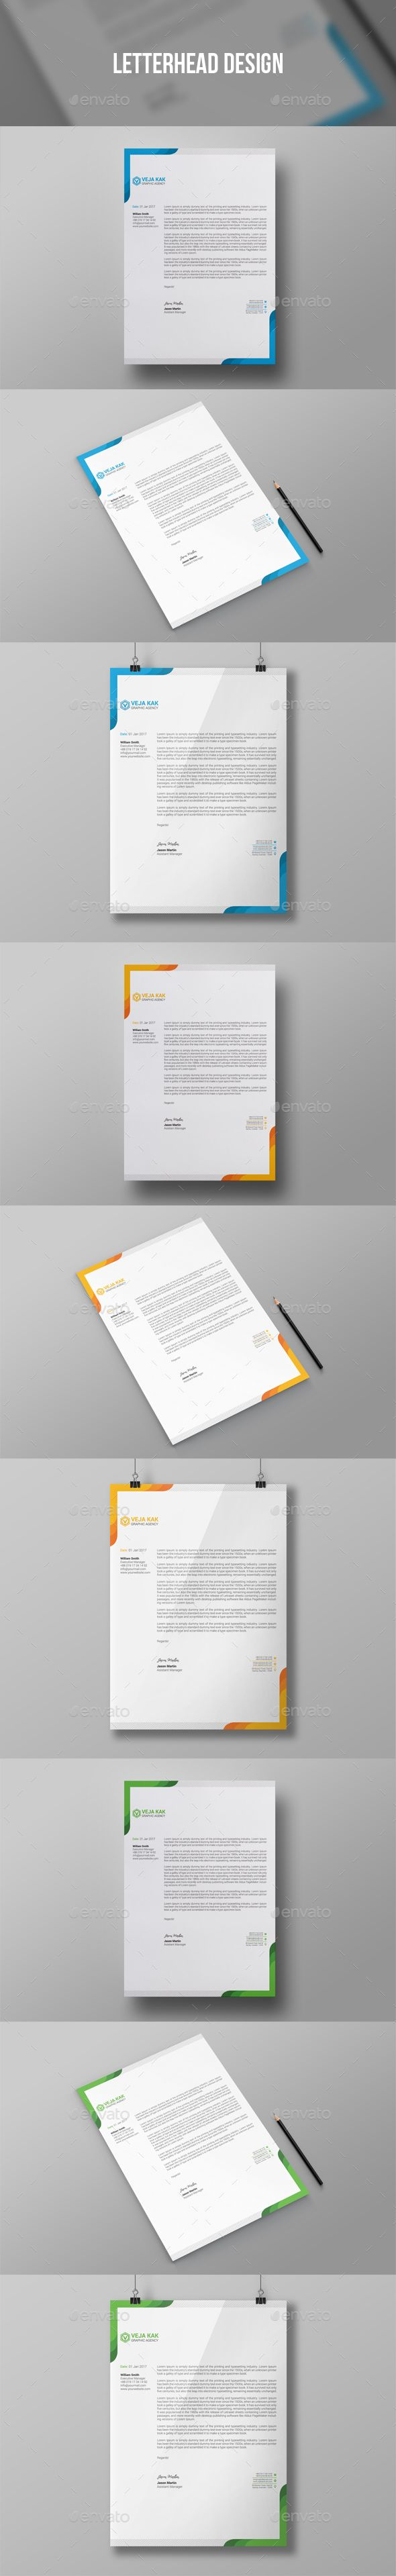 Template Sample Introduction Letter Best Letterhead